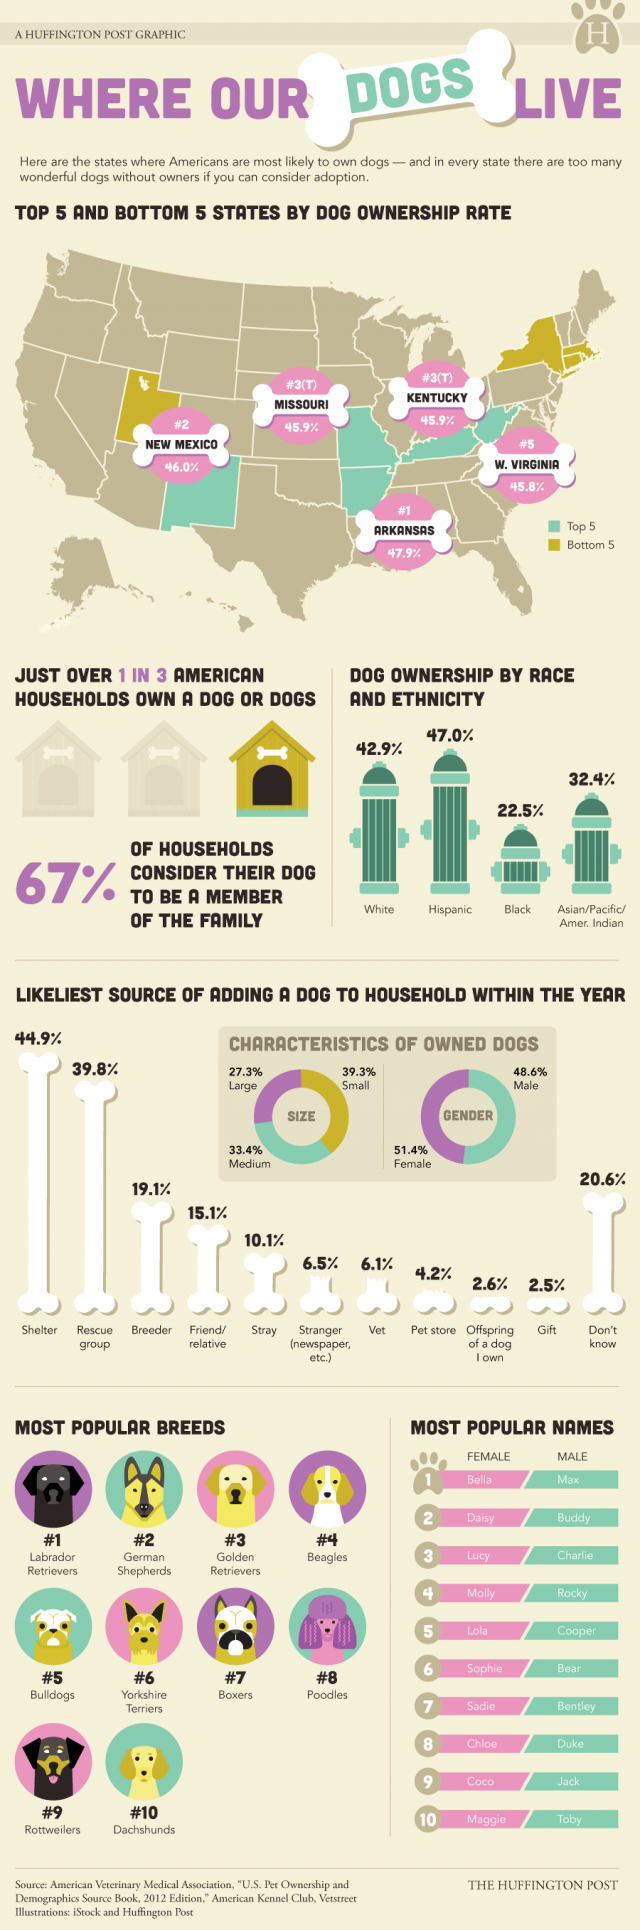 Where our dogs live